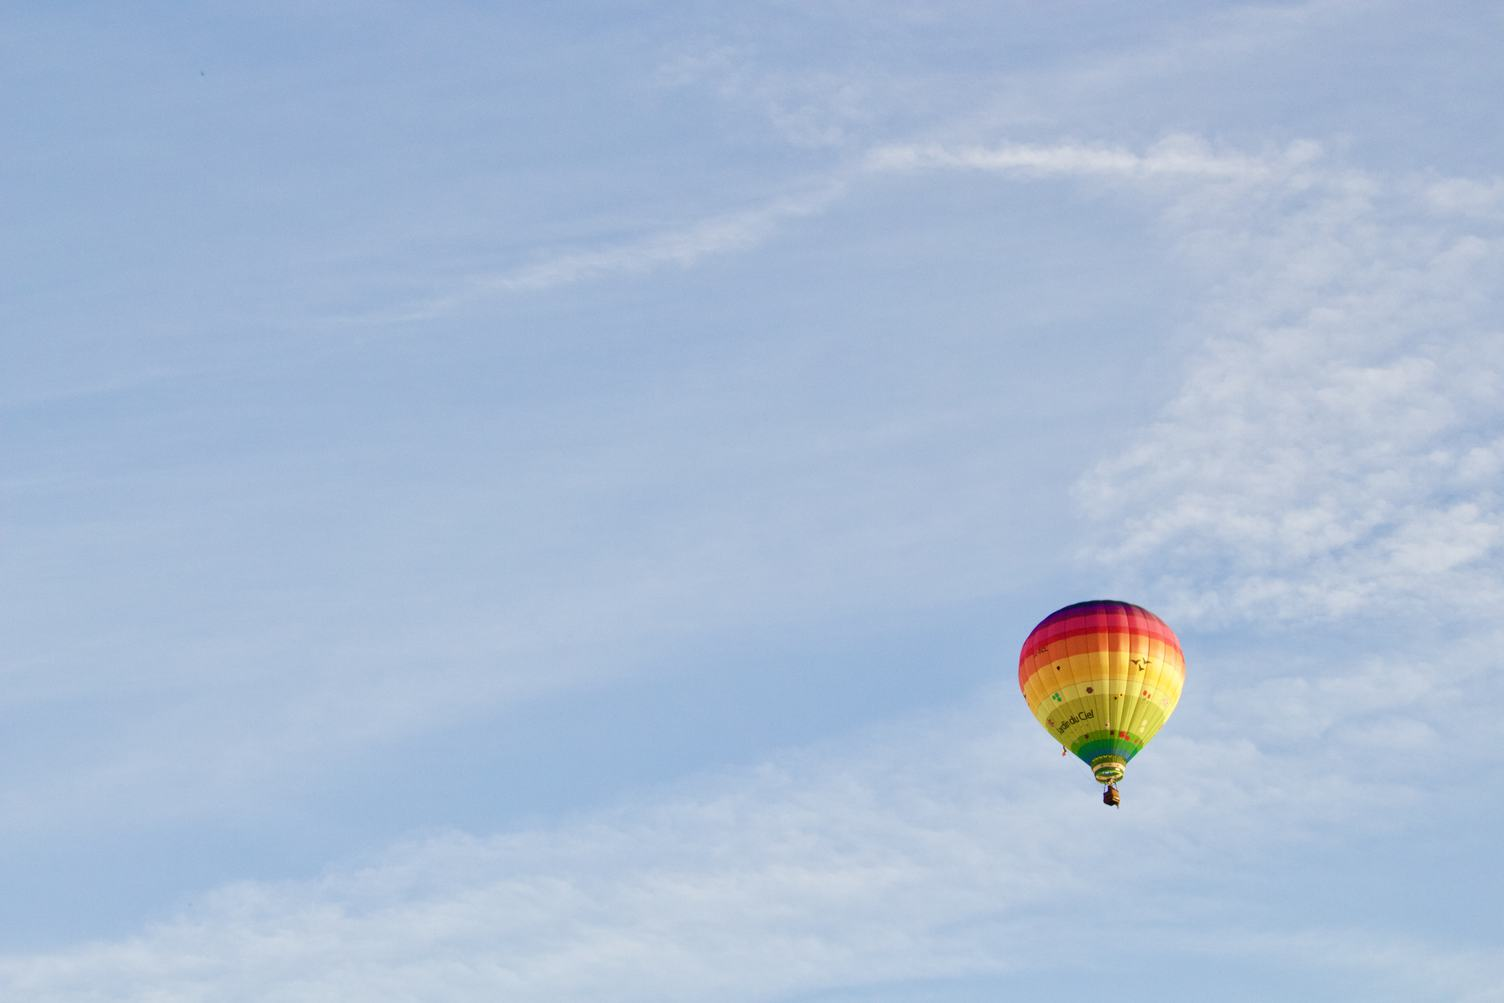 Single Colorful Hot Air Balloon in the Sky